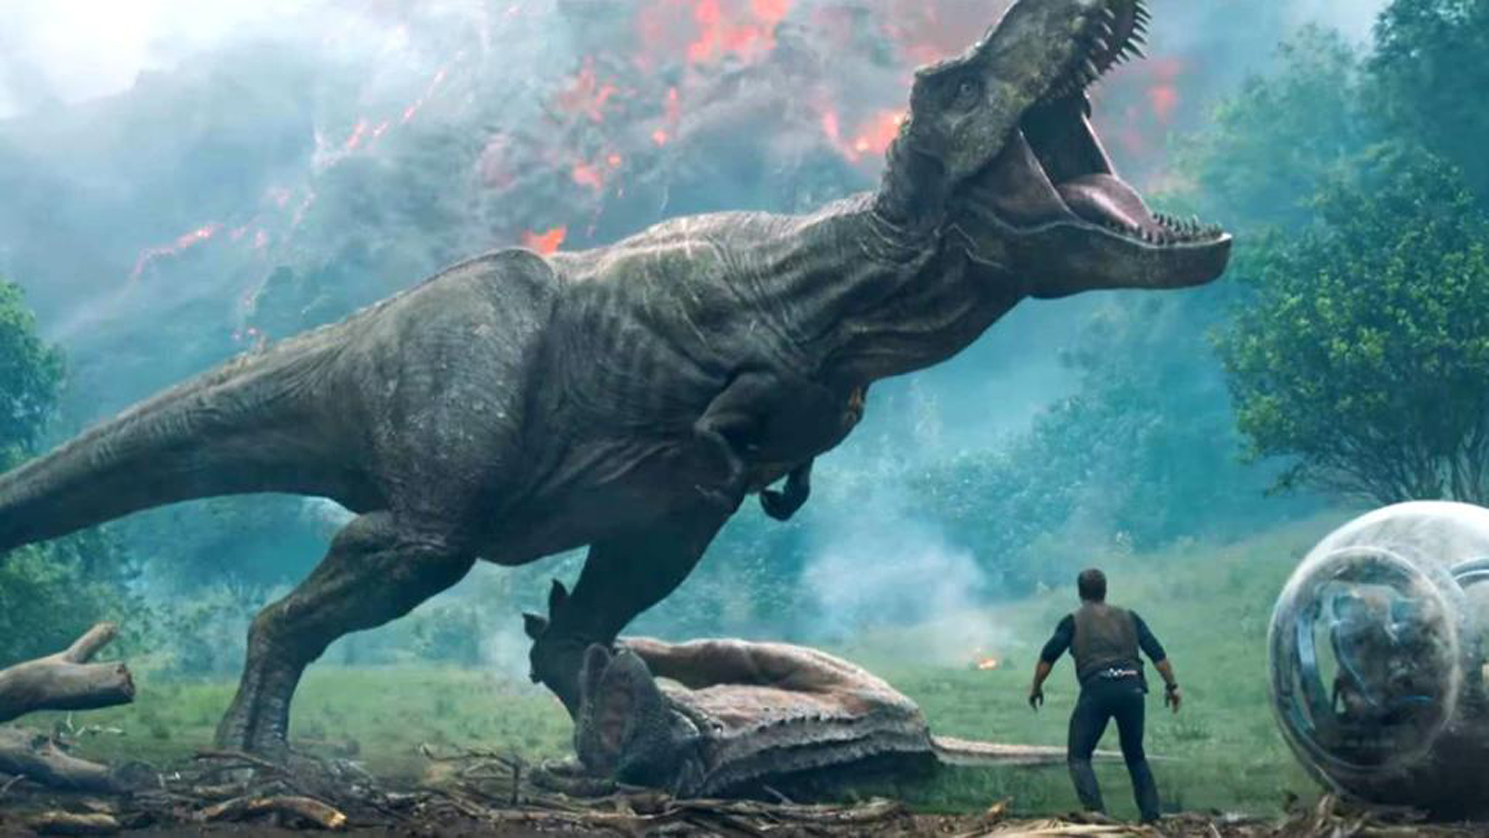 jurassic world fallen kingdom trailer puts man dinosaurs in peril the fanboy seo. Black Bedroom Furniture Sets. Home Design Ideas